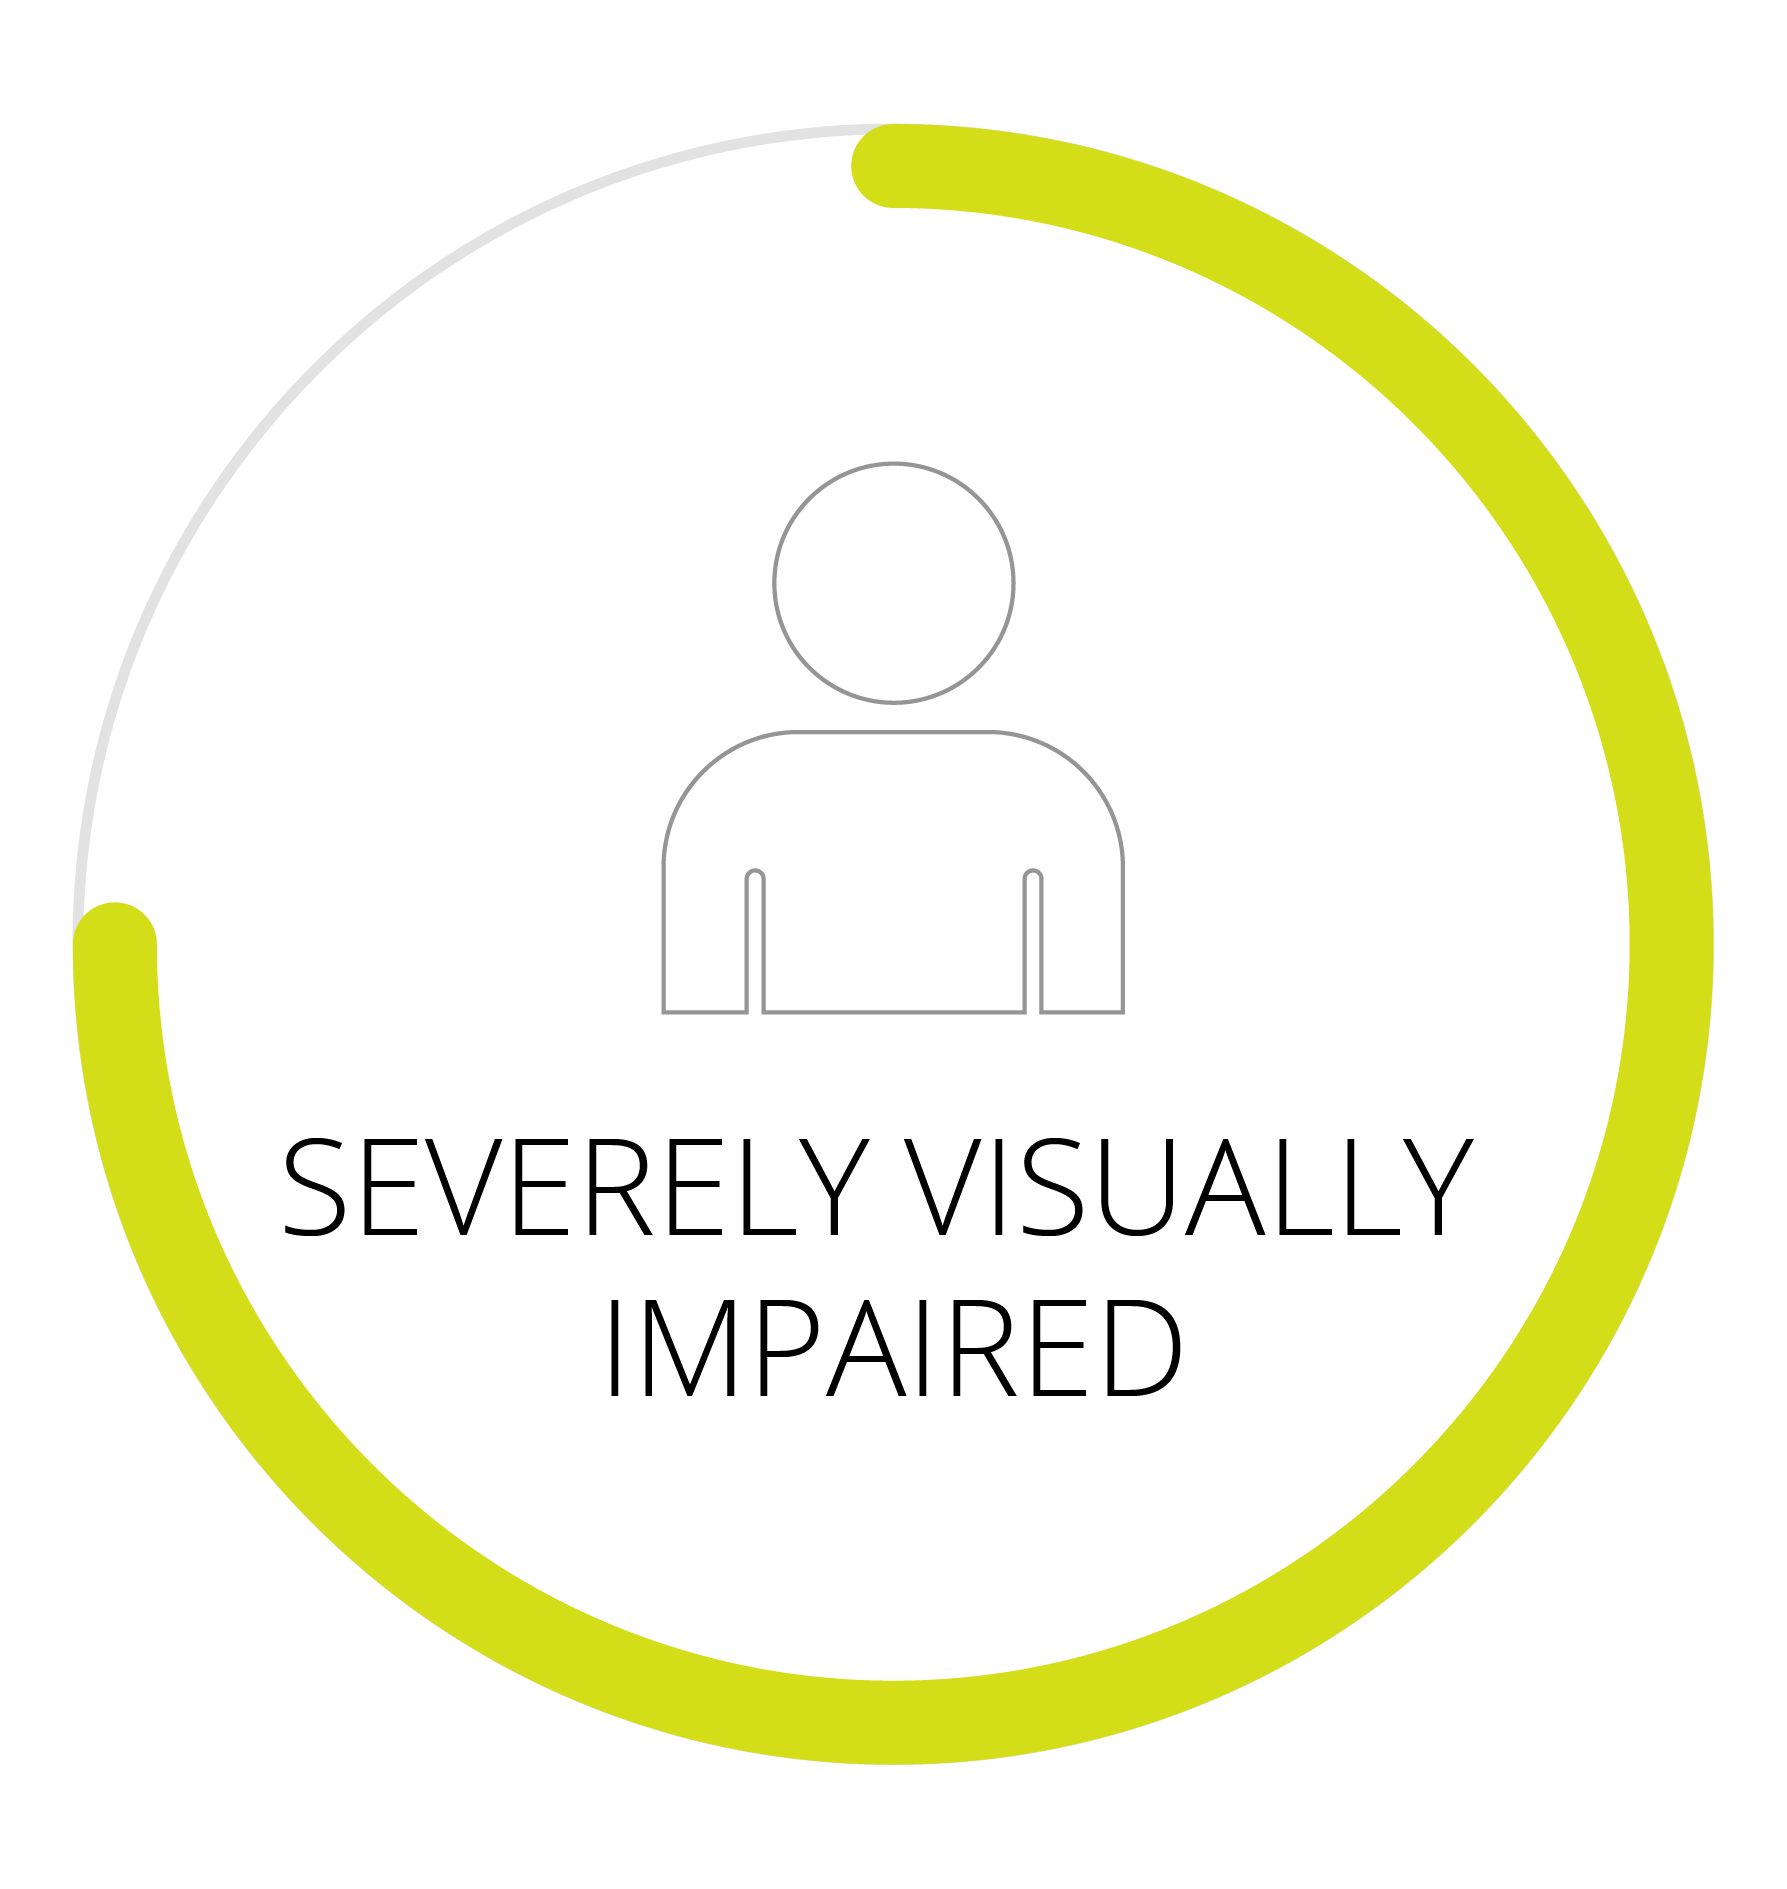 OUT OF THE 23.7M, 10 MILLION ARE CONSIDERED SEVERELY VISUALLY IMPAIRED